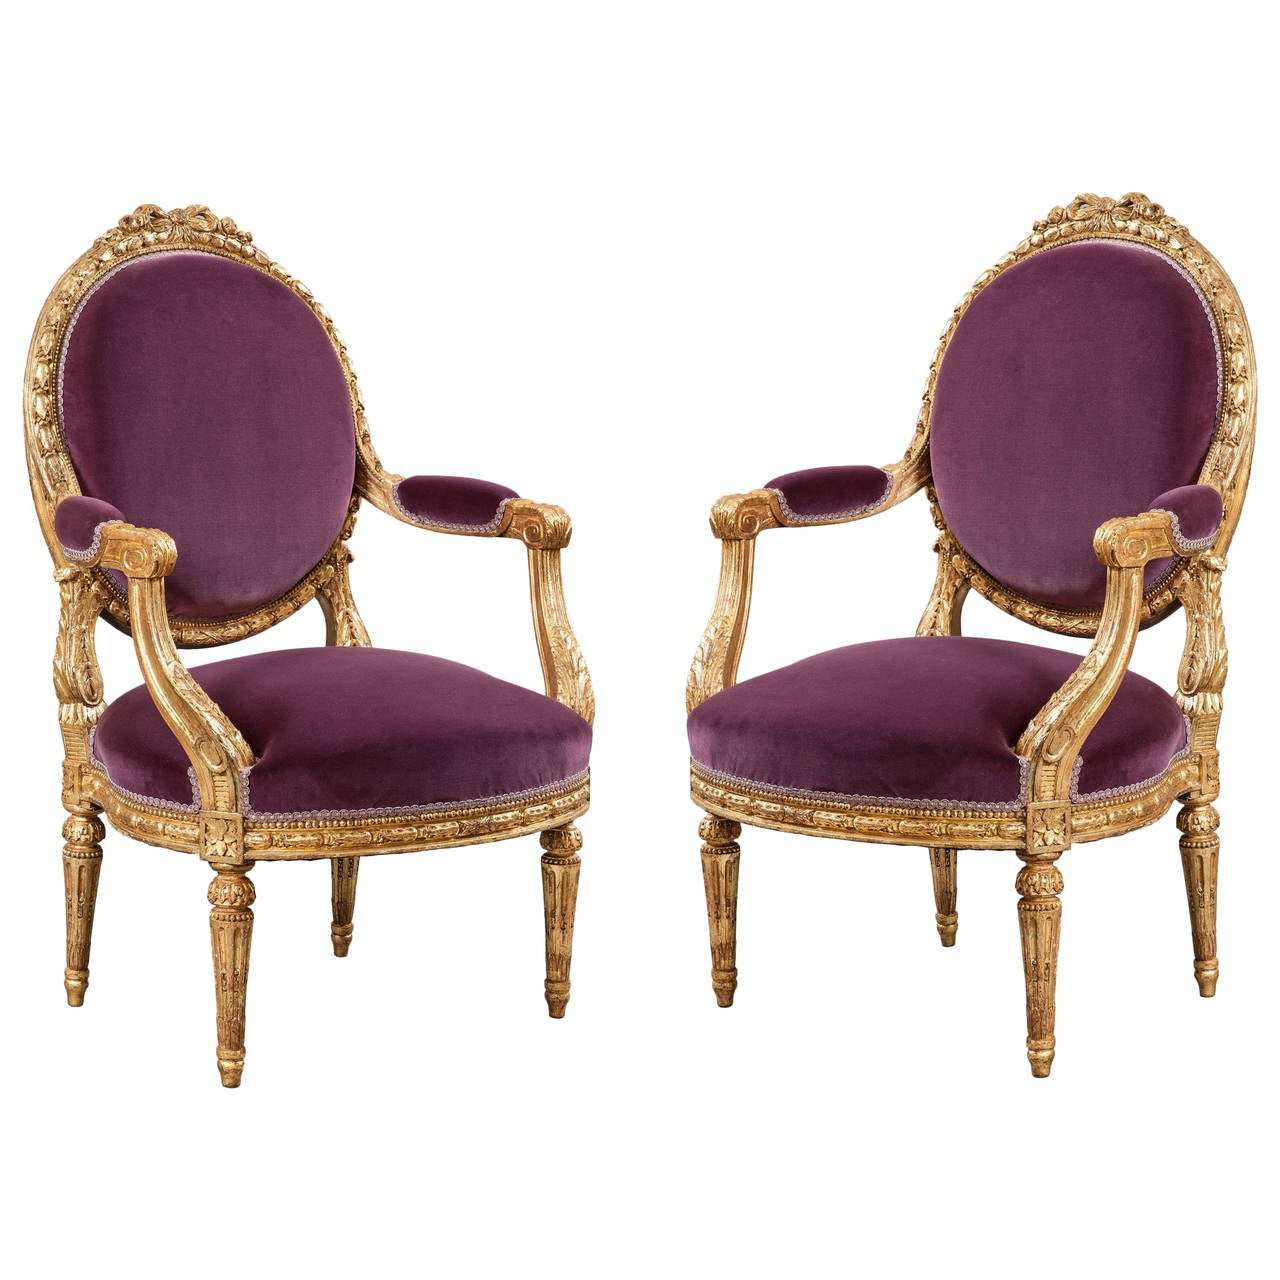 Pair of 19th Century French Giltwood and Purple Velvet Armchairs For Sale